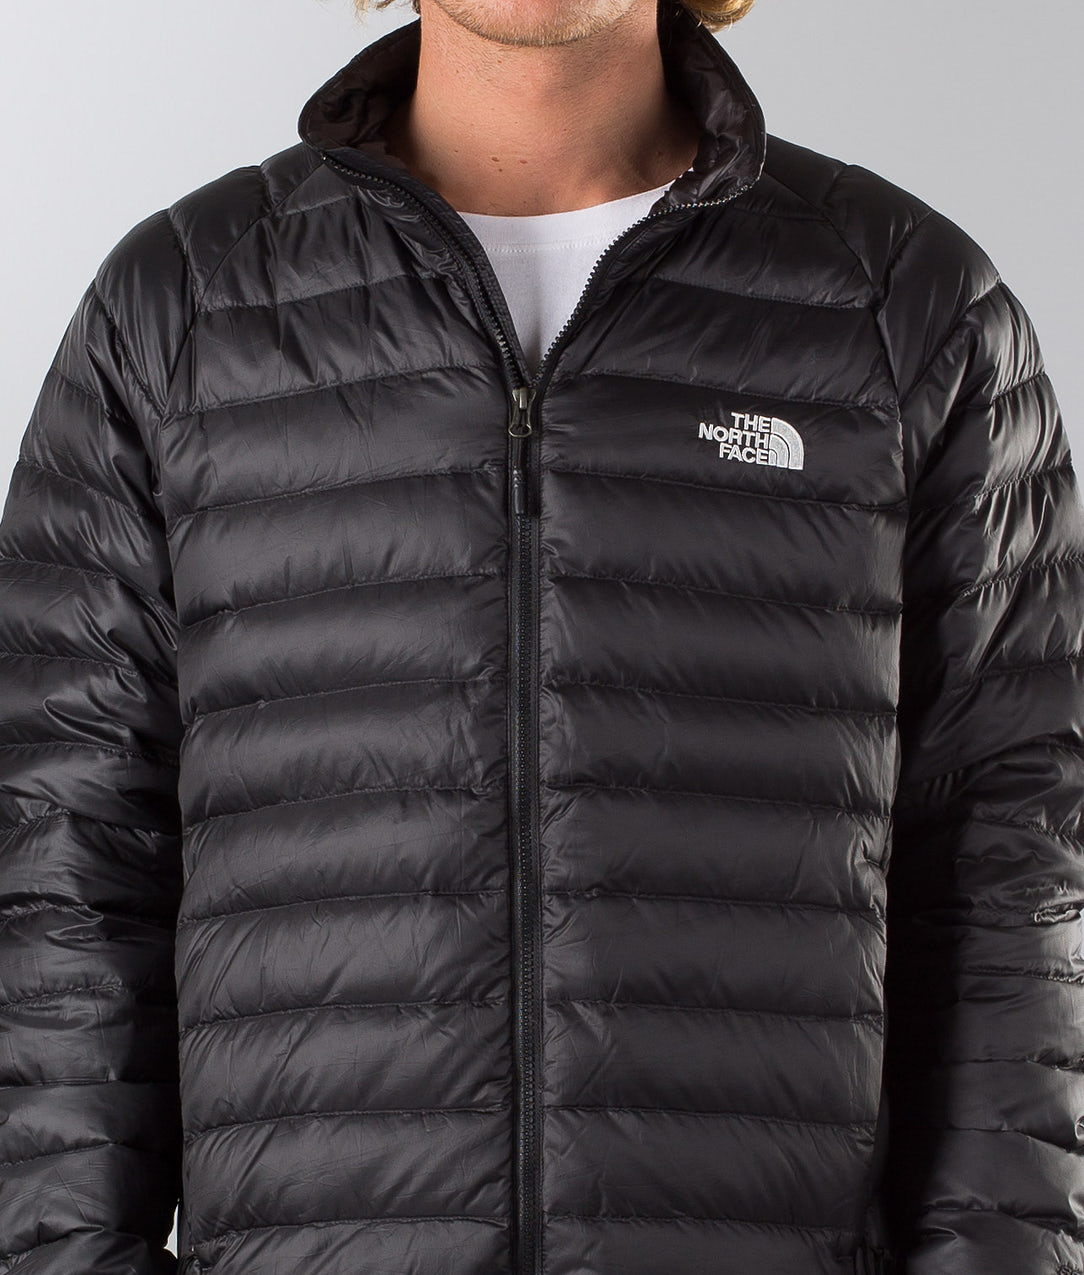 new style 6d3f0 215e7 The North Face Trevail Jacket tnf black/tnf black